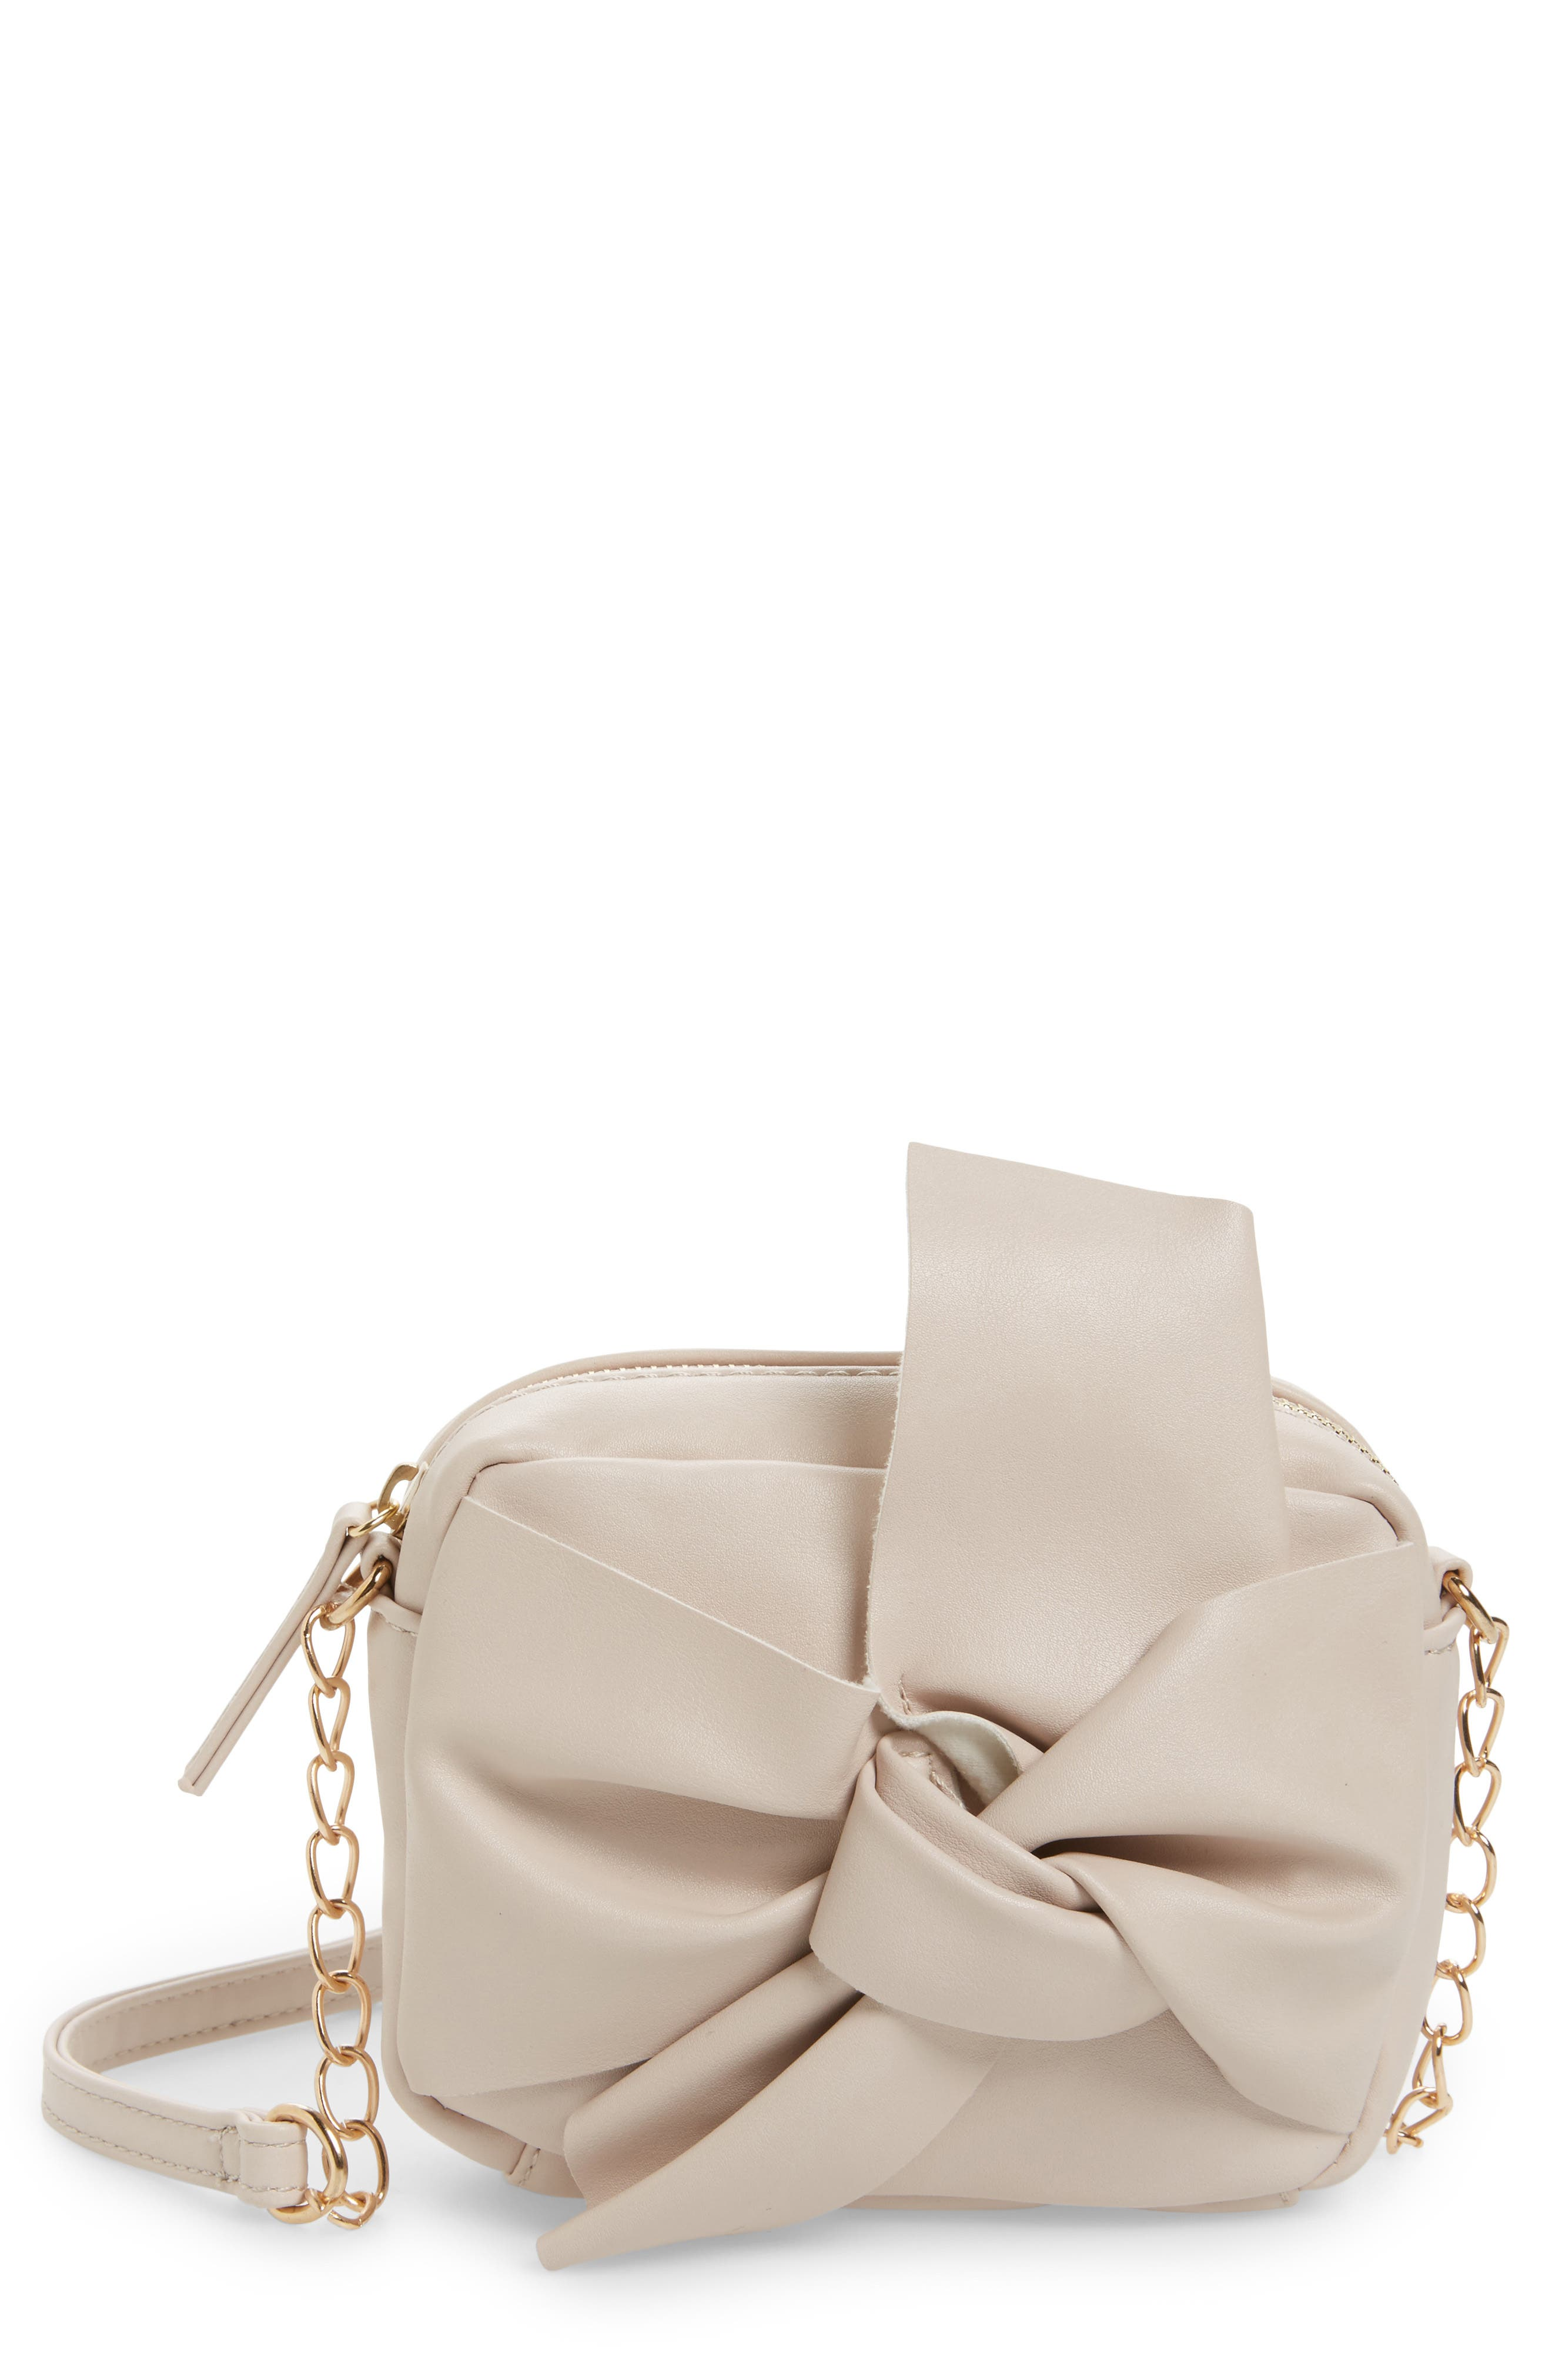 Knotted Bow Faux Leather Crossbody Bag,                             Main thumbnail 1, color,                             Blush